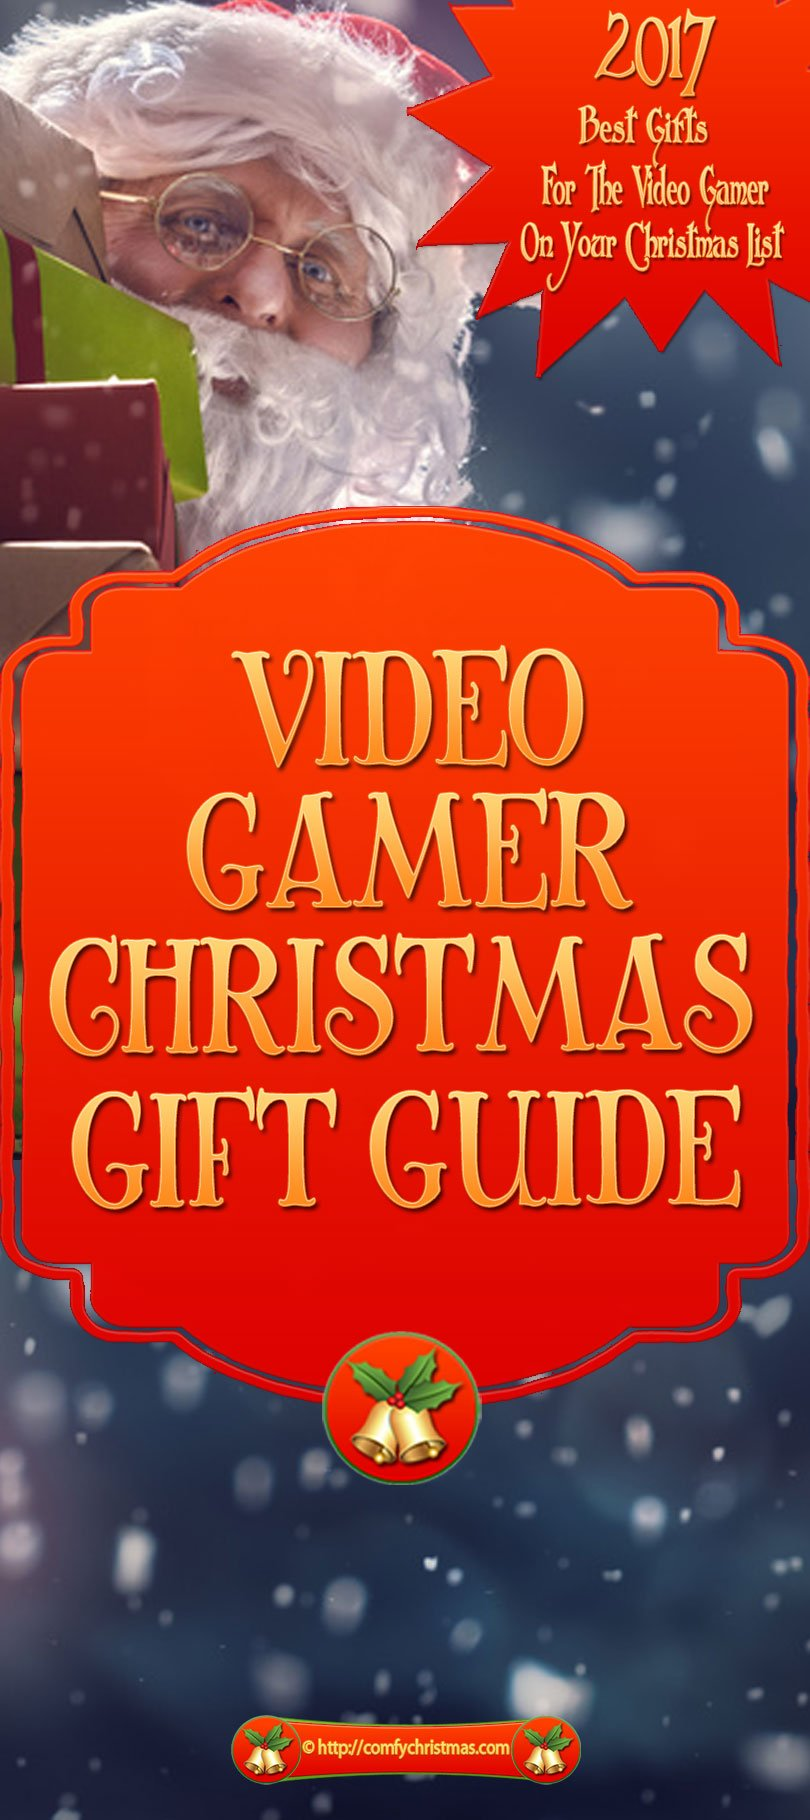 Video Gamer Gifts 2017 Video Games Gift Guide